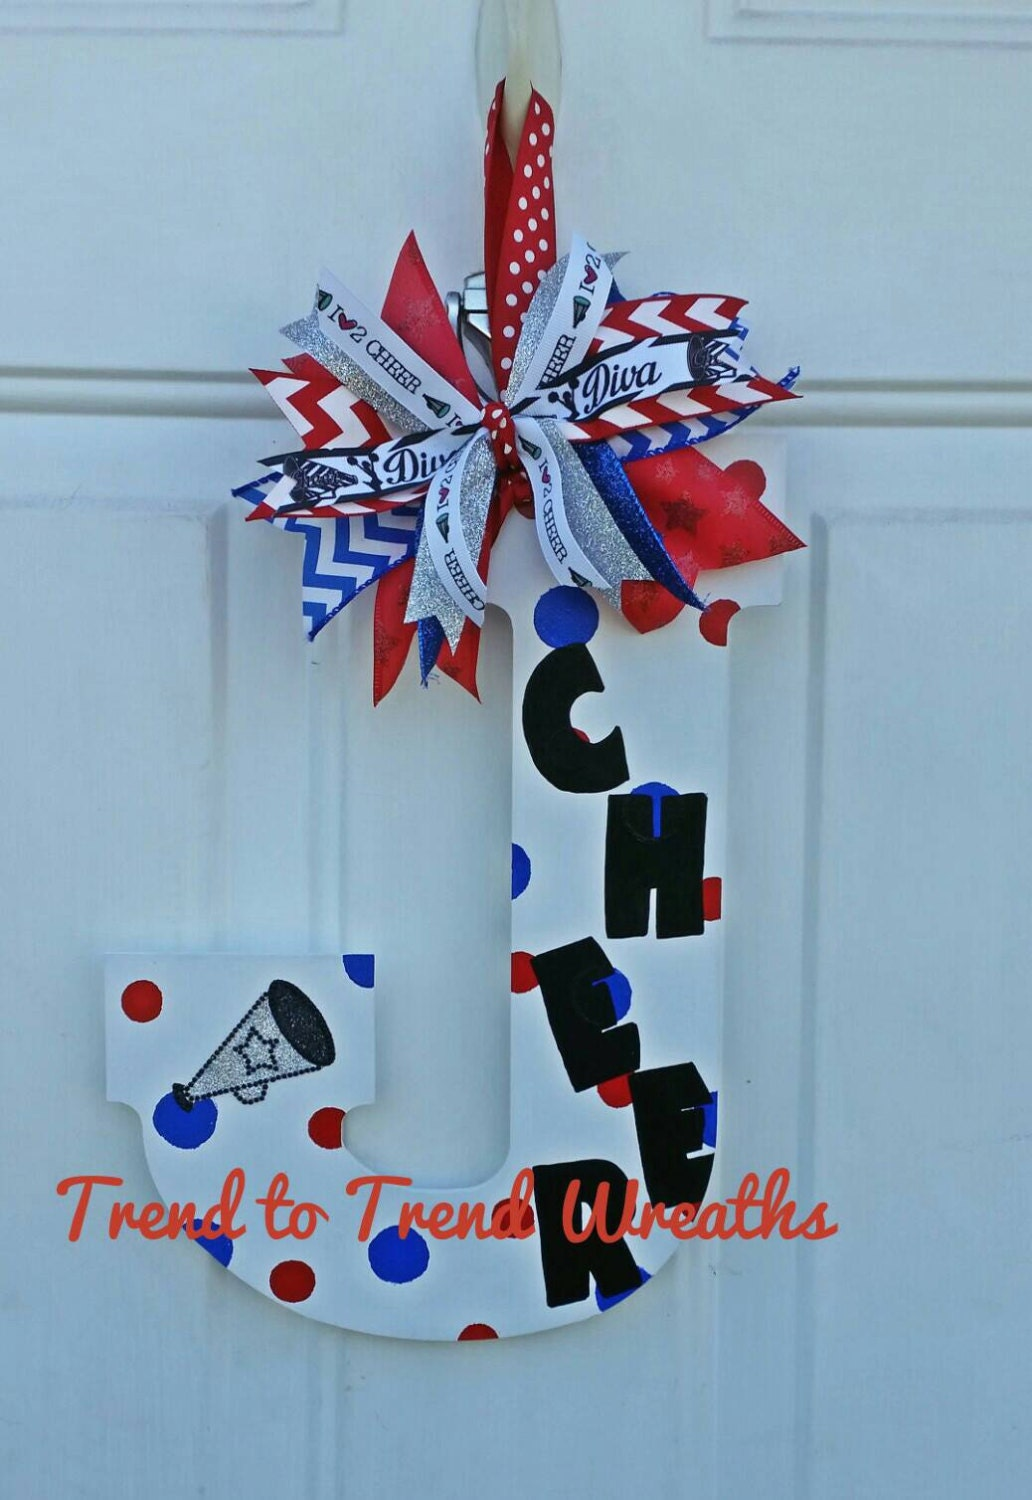 Cheer Letter Cheerleading Wall Decor Cheer Gift Cheer